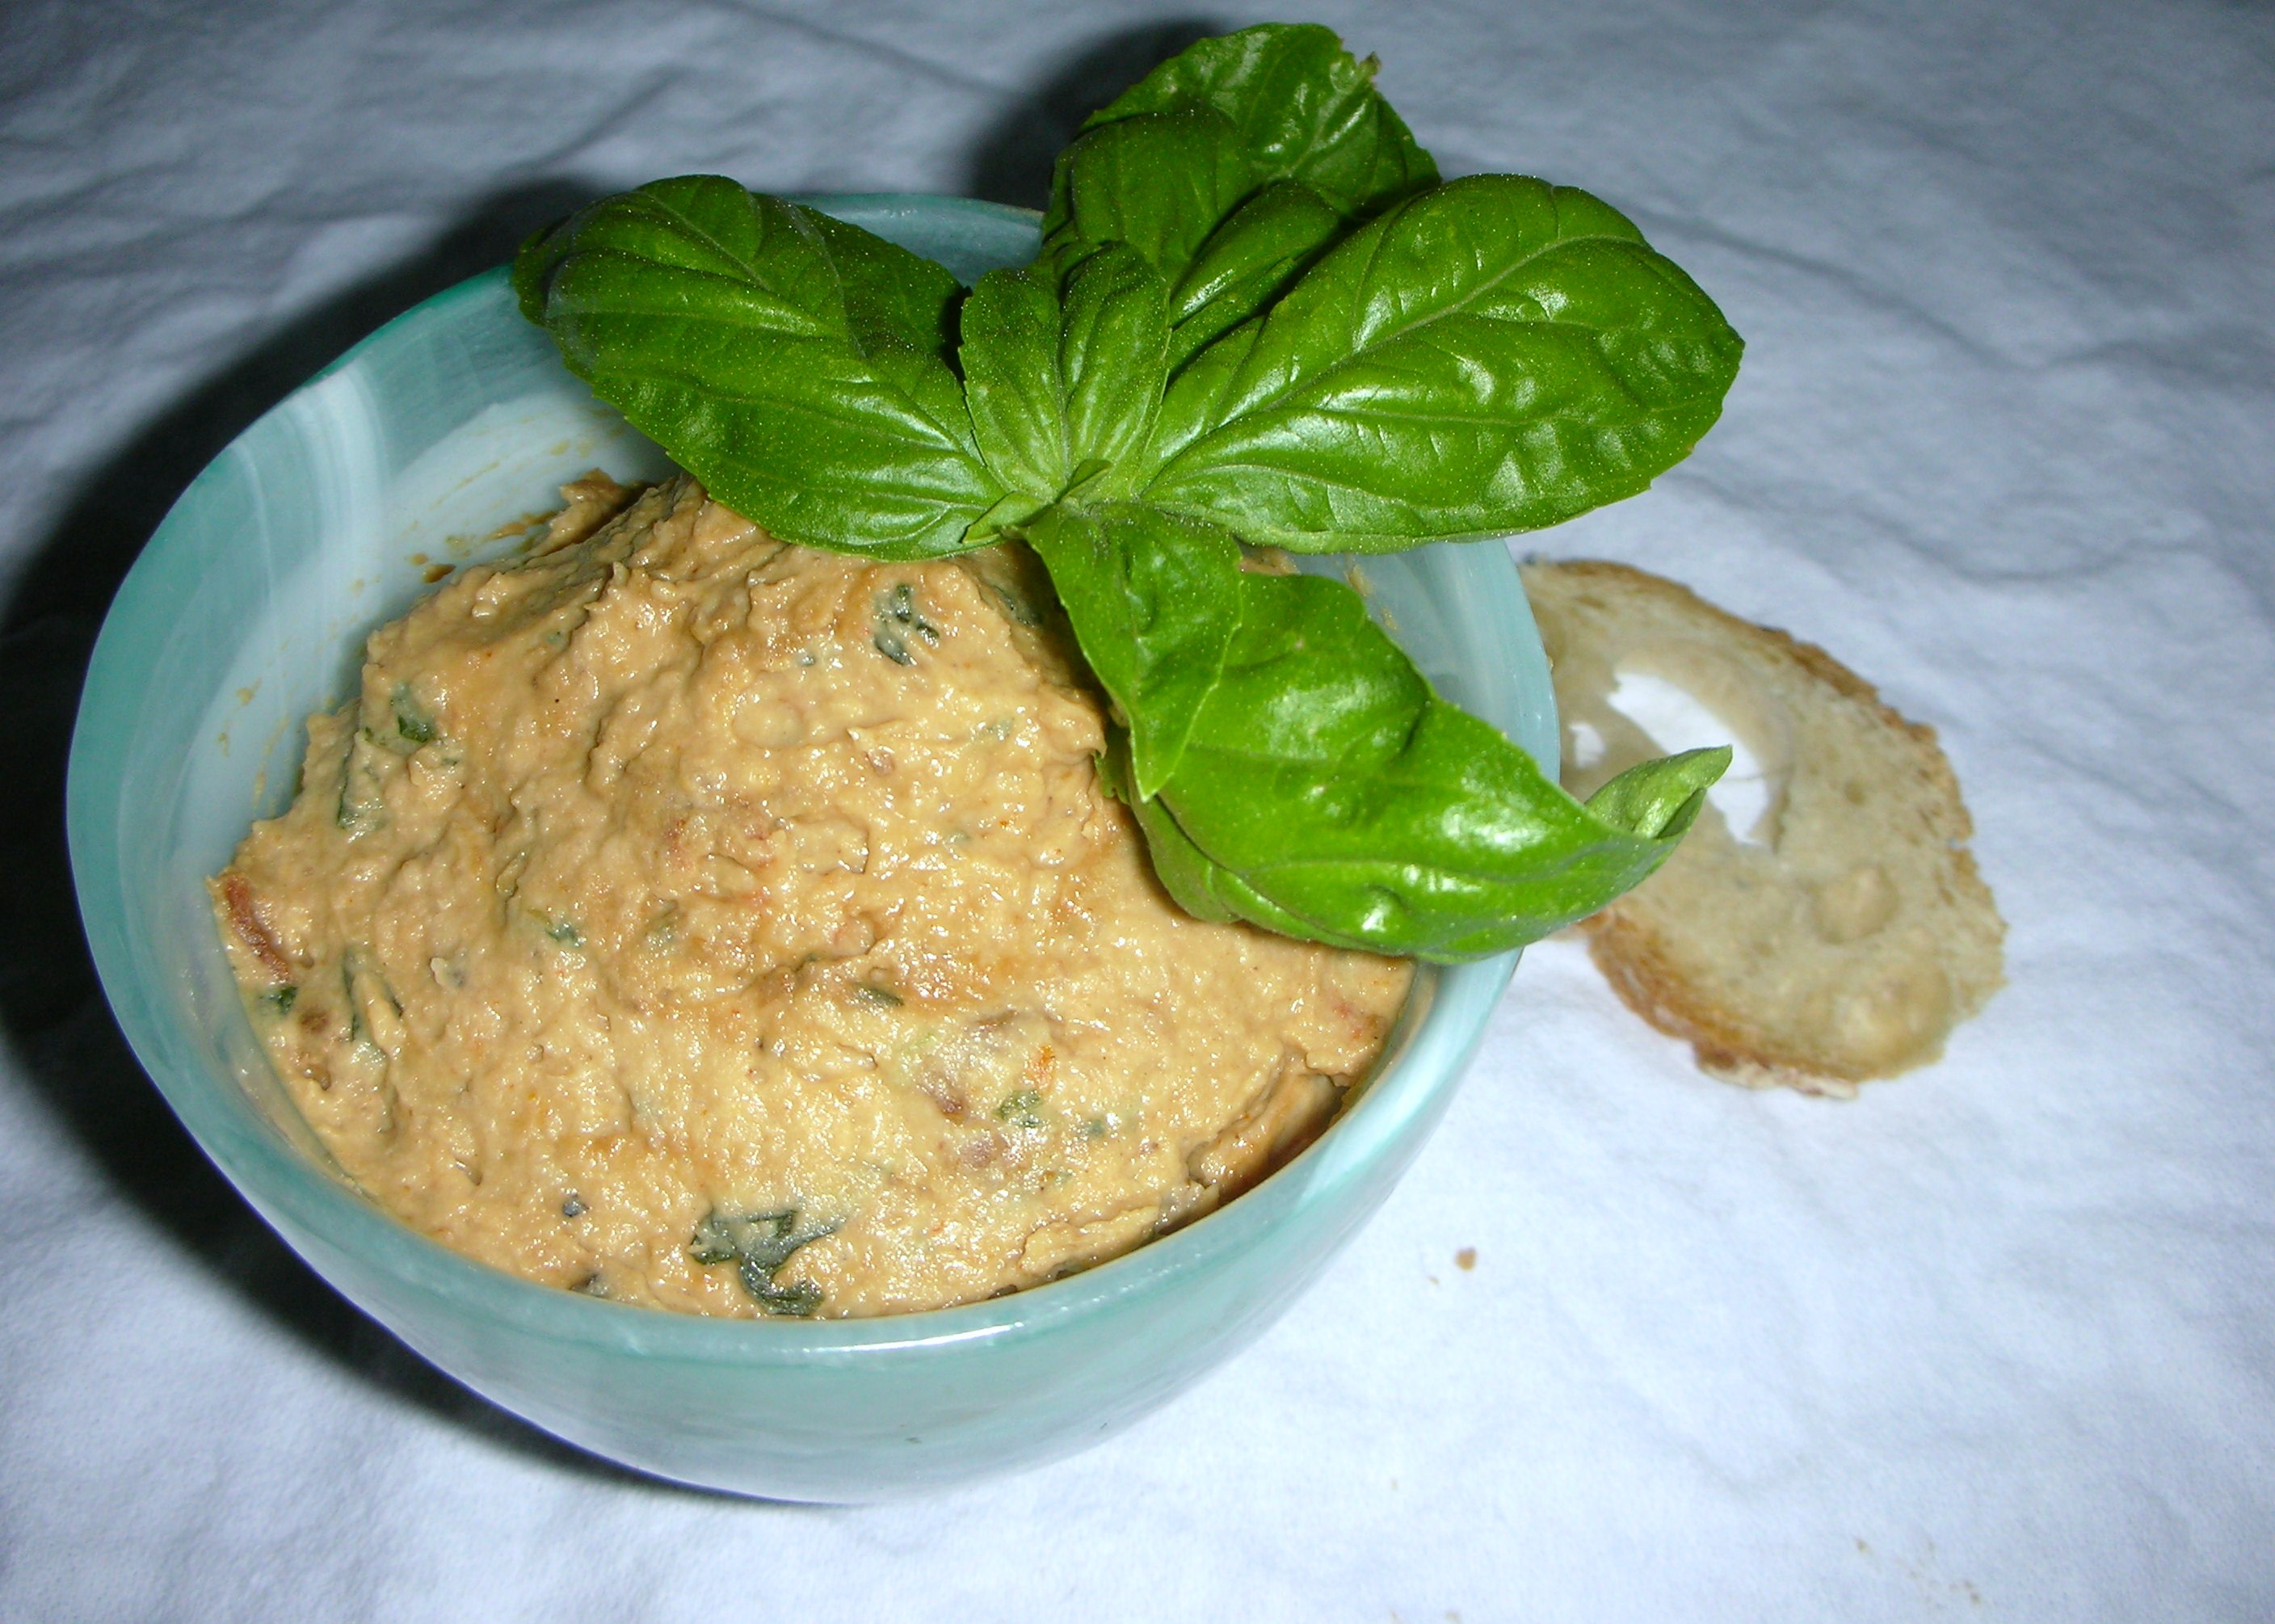 cannellini bean spread with sun-dried tomato and basil